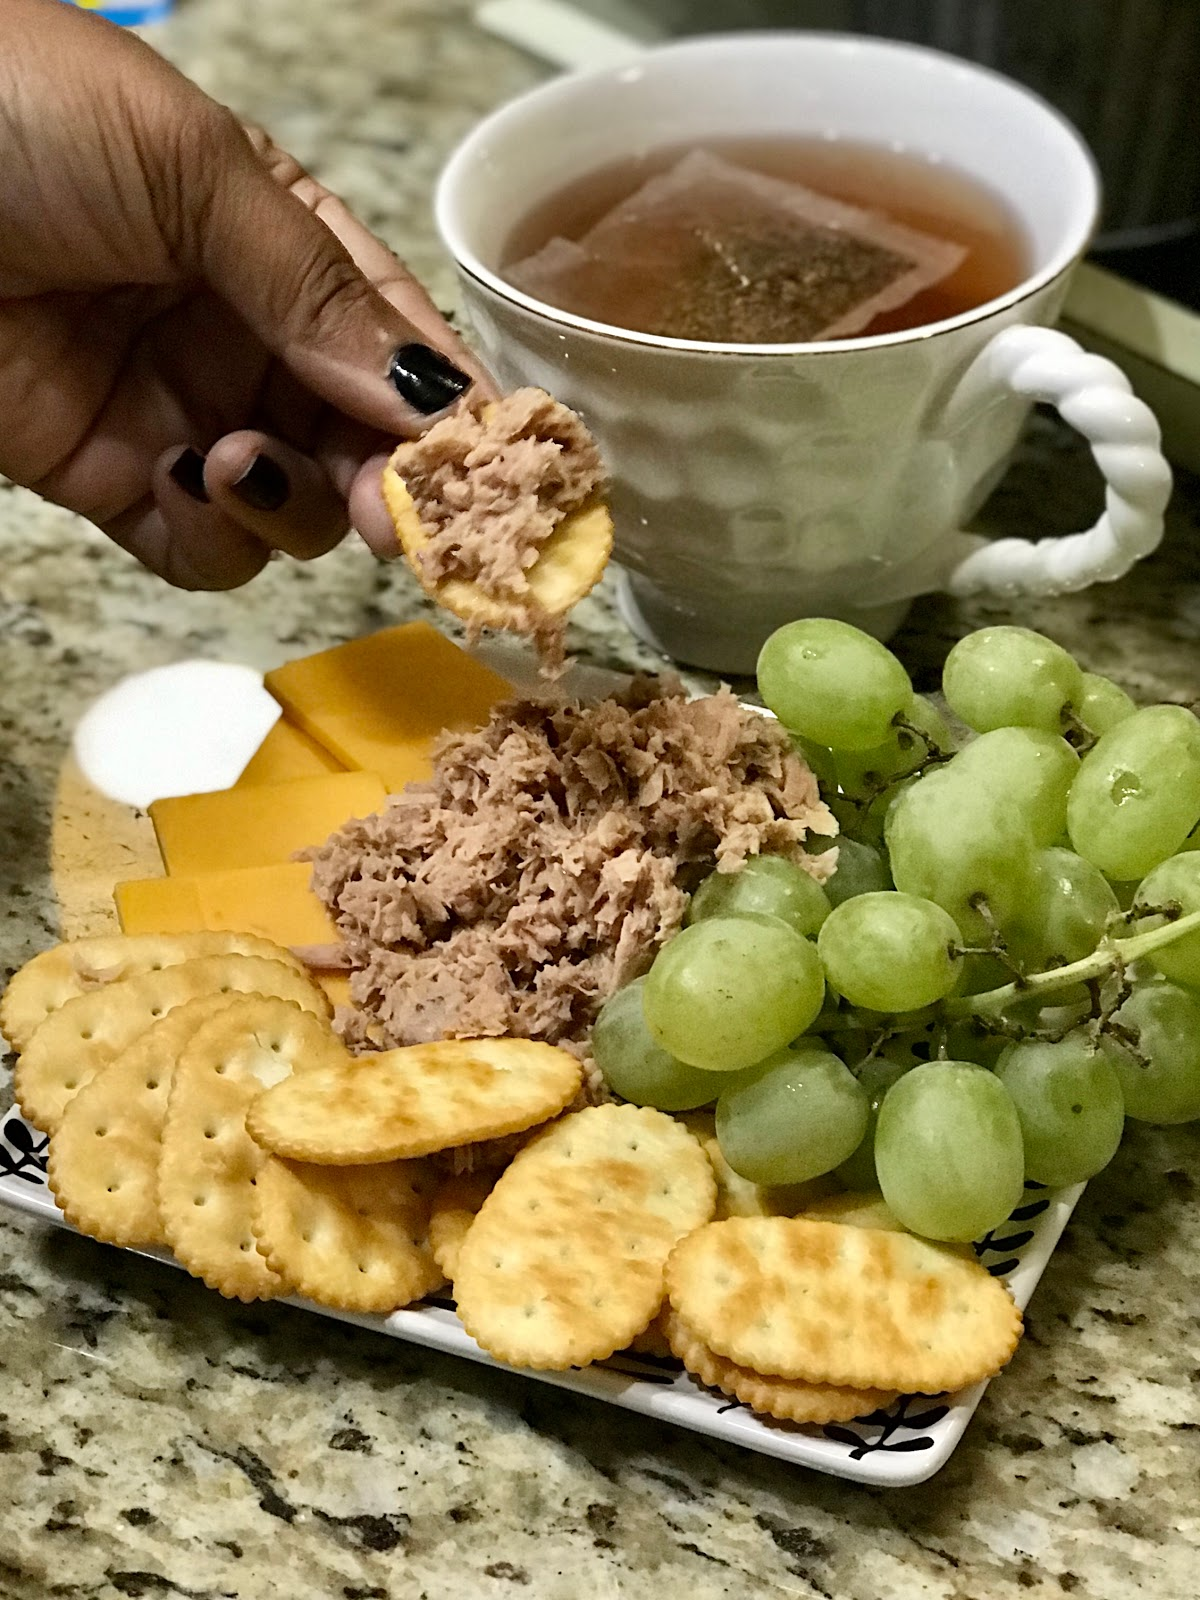 Woman eating tuna with crackers, grapes, sharp cheddar cheese and hot tea